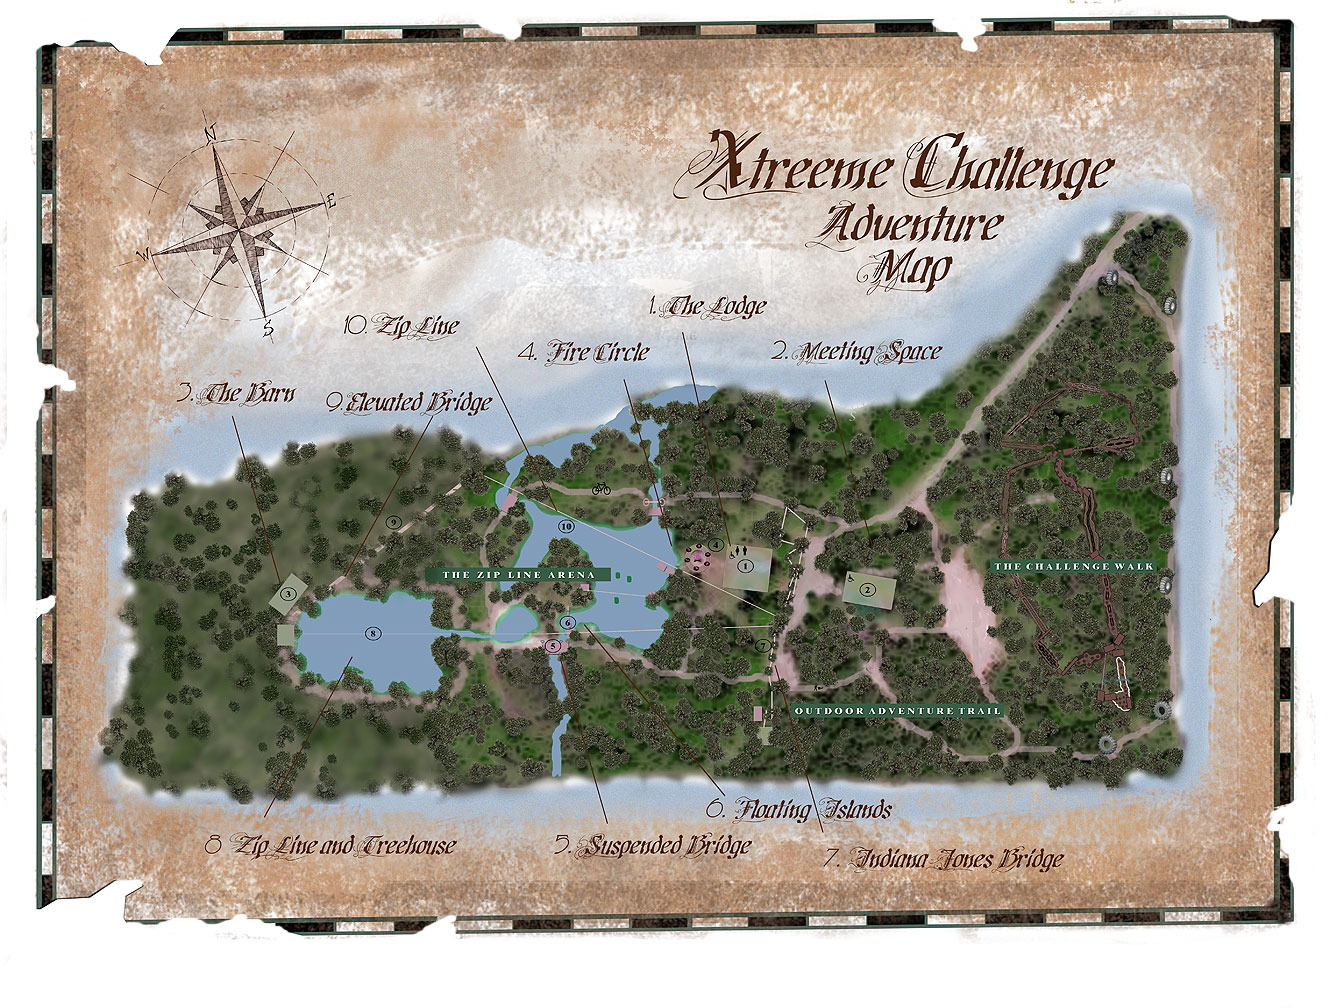 Xtreeme Challenge 17 Acre Adventure Map in Charlotte North Carolina